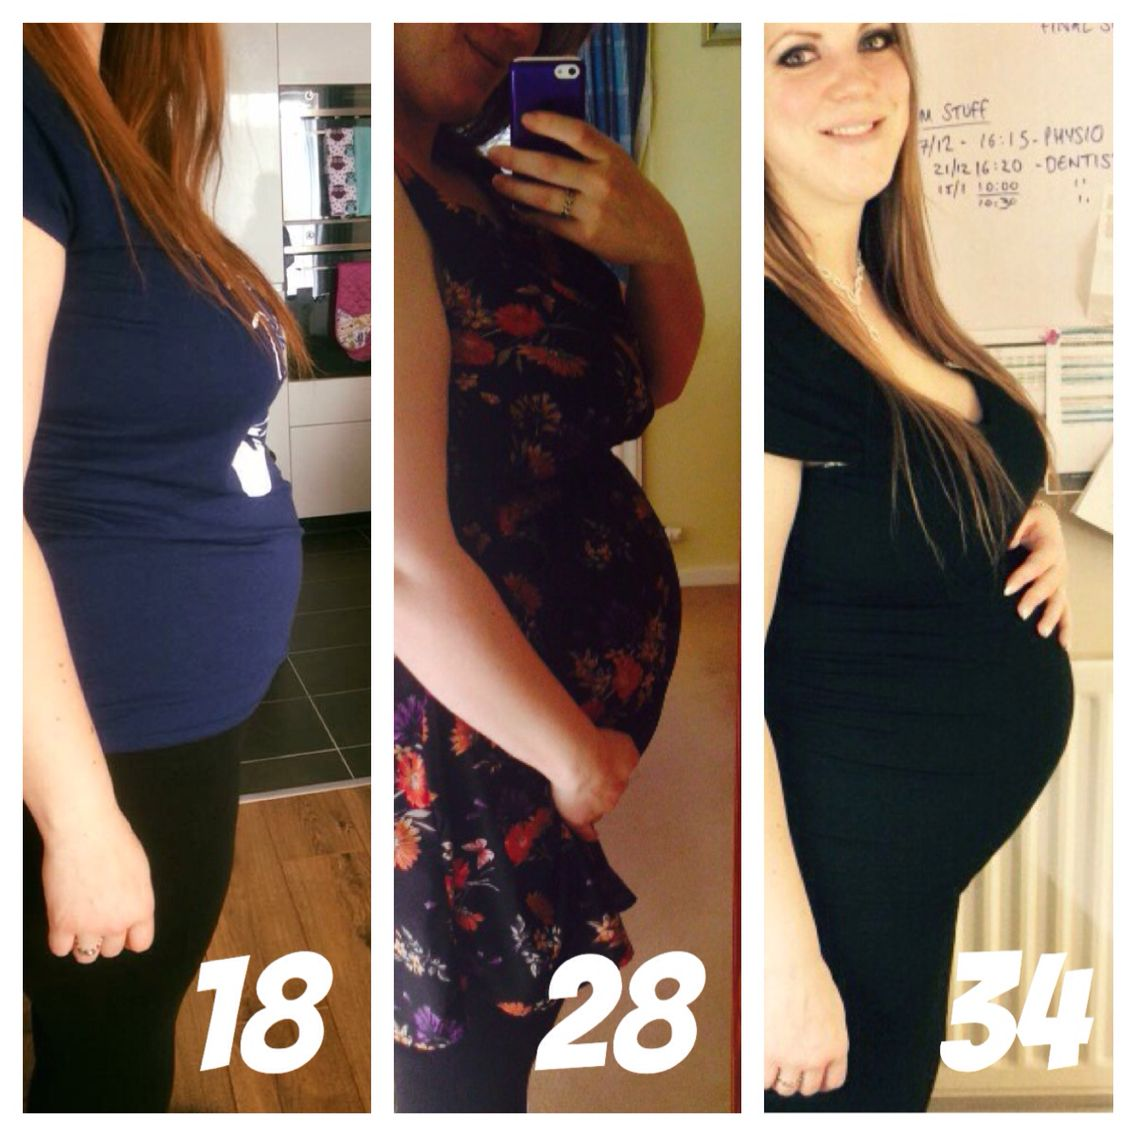 Ally plus size pregnancy weeks 18, 28 and 34. No weight gain! ��